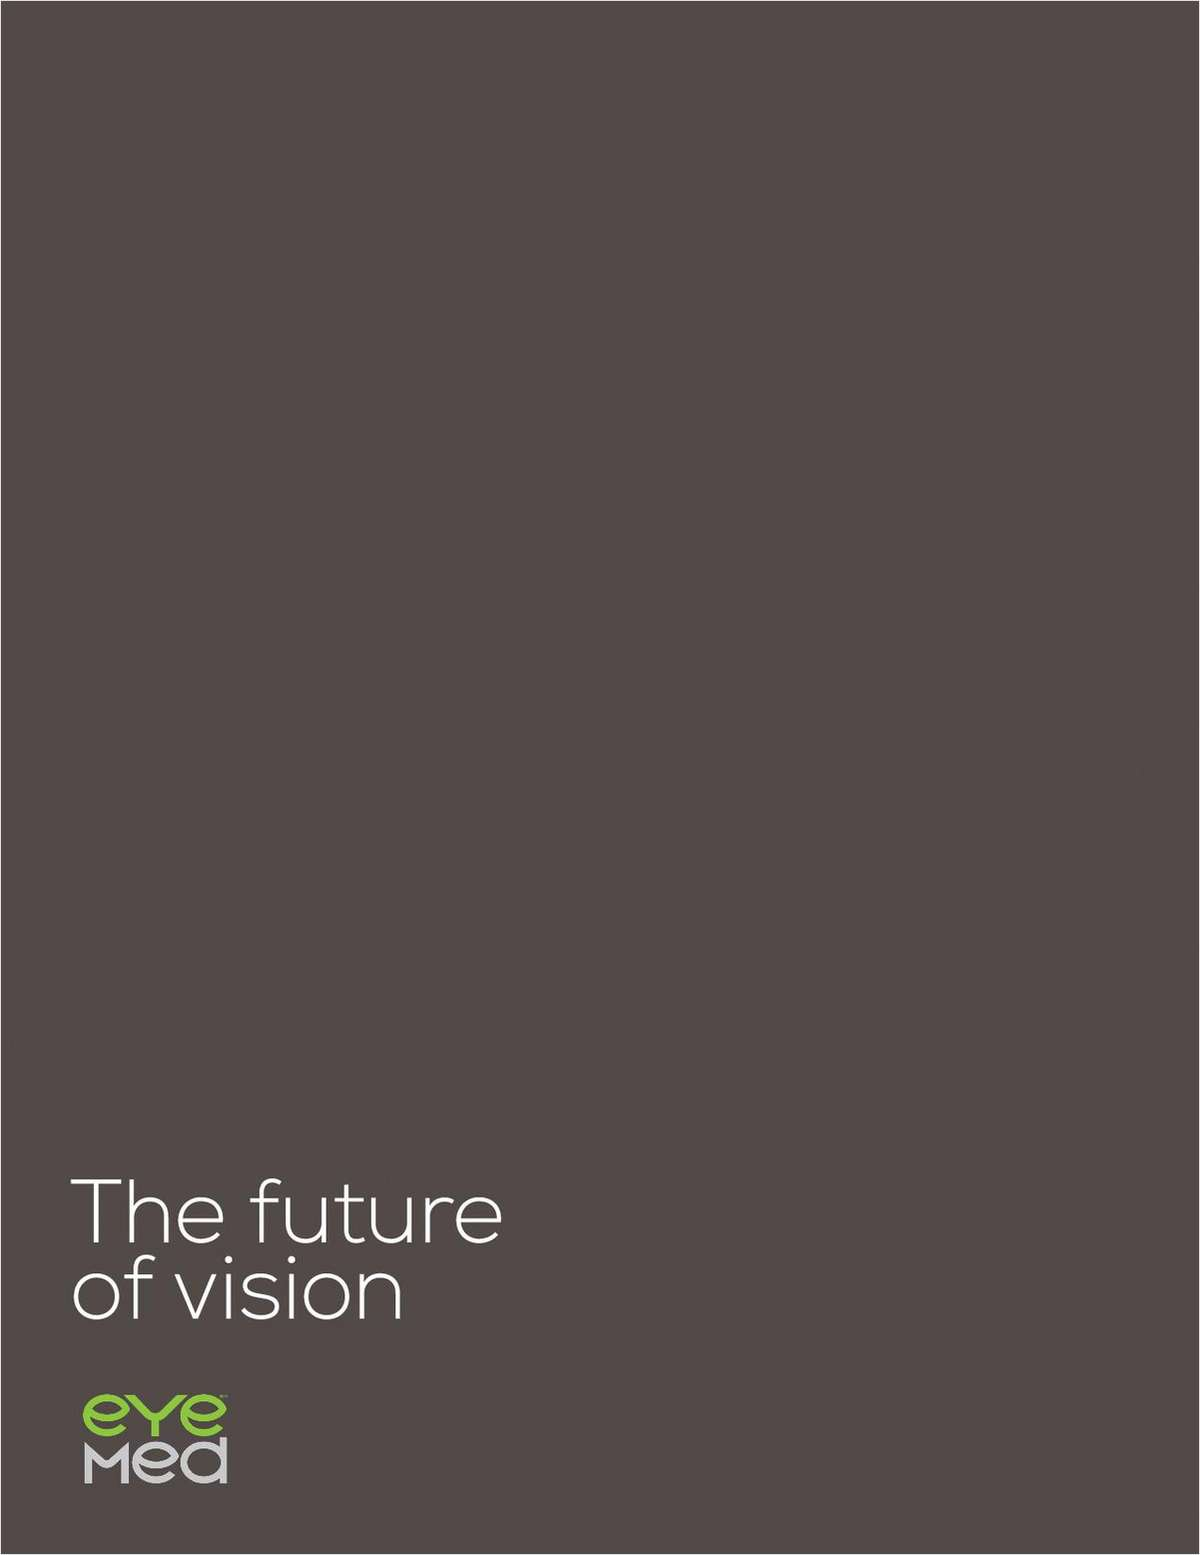 HR Benefit Professionals: The Future of Vision